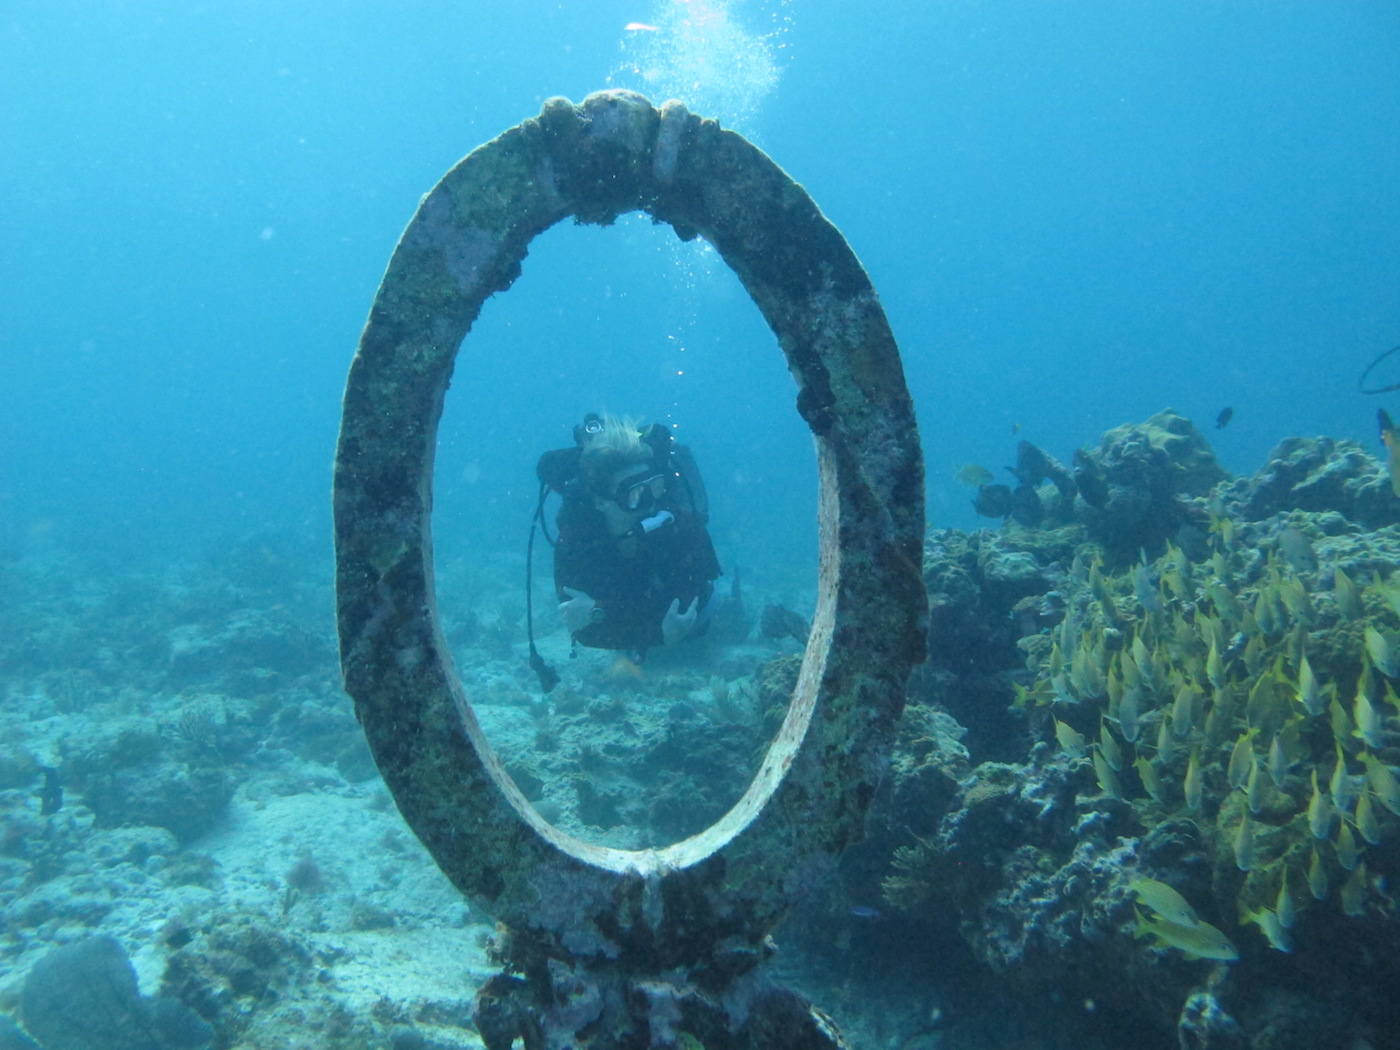 MUSA-Underwater-Museum-Snorkeling-Scuba-Diving-Tours-Isla-Mujeres-Carey-Dive-Center-8